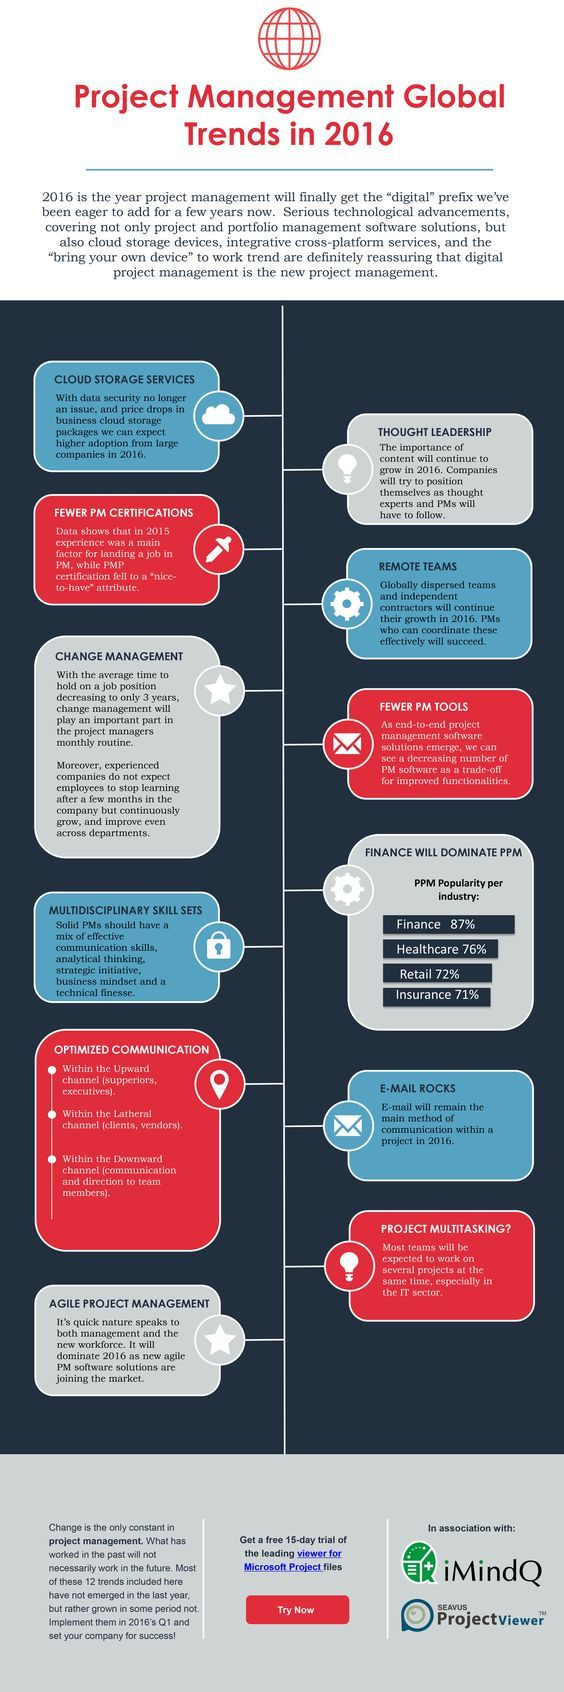 21 best project management images on pinterest project project management global trends in 2016 infographic 1betcityfo Image collections